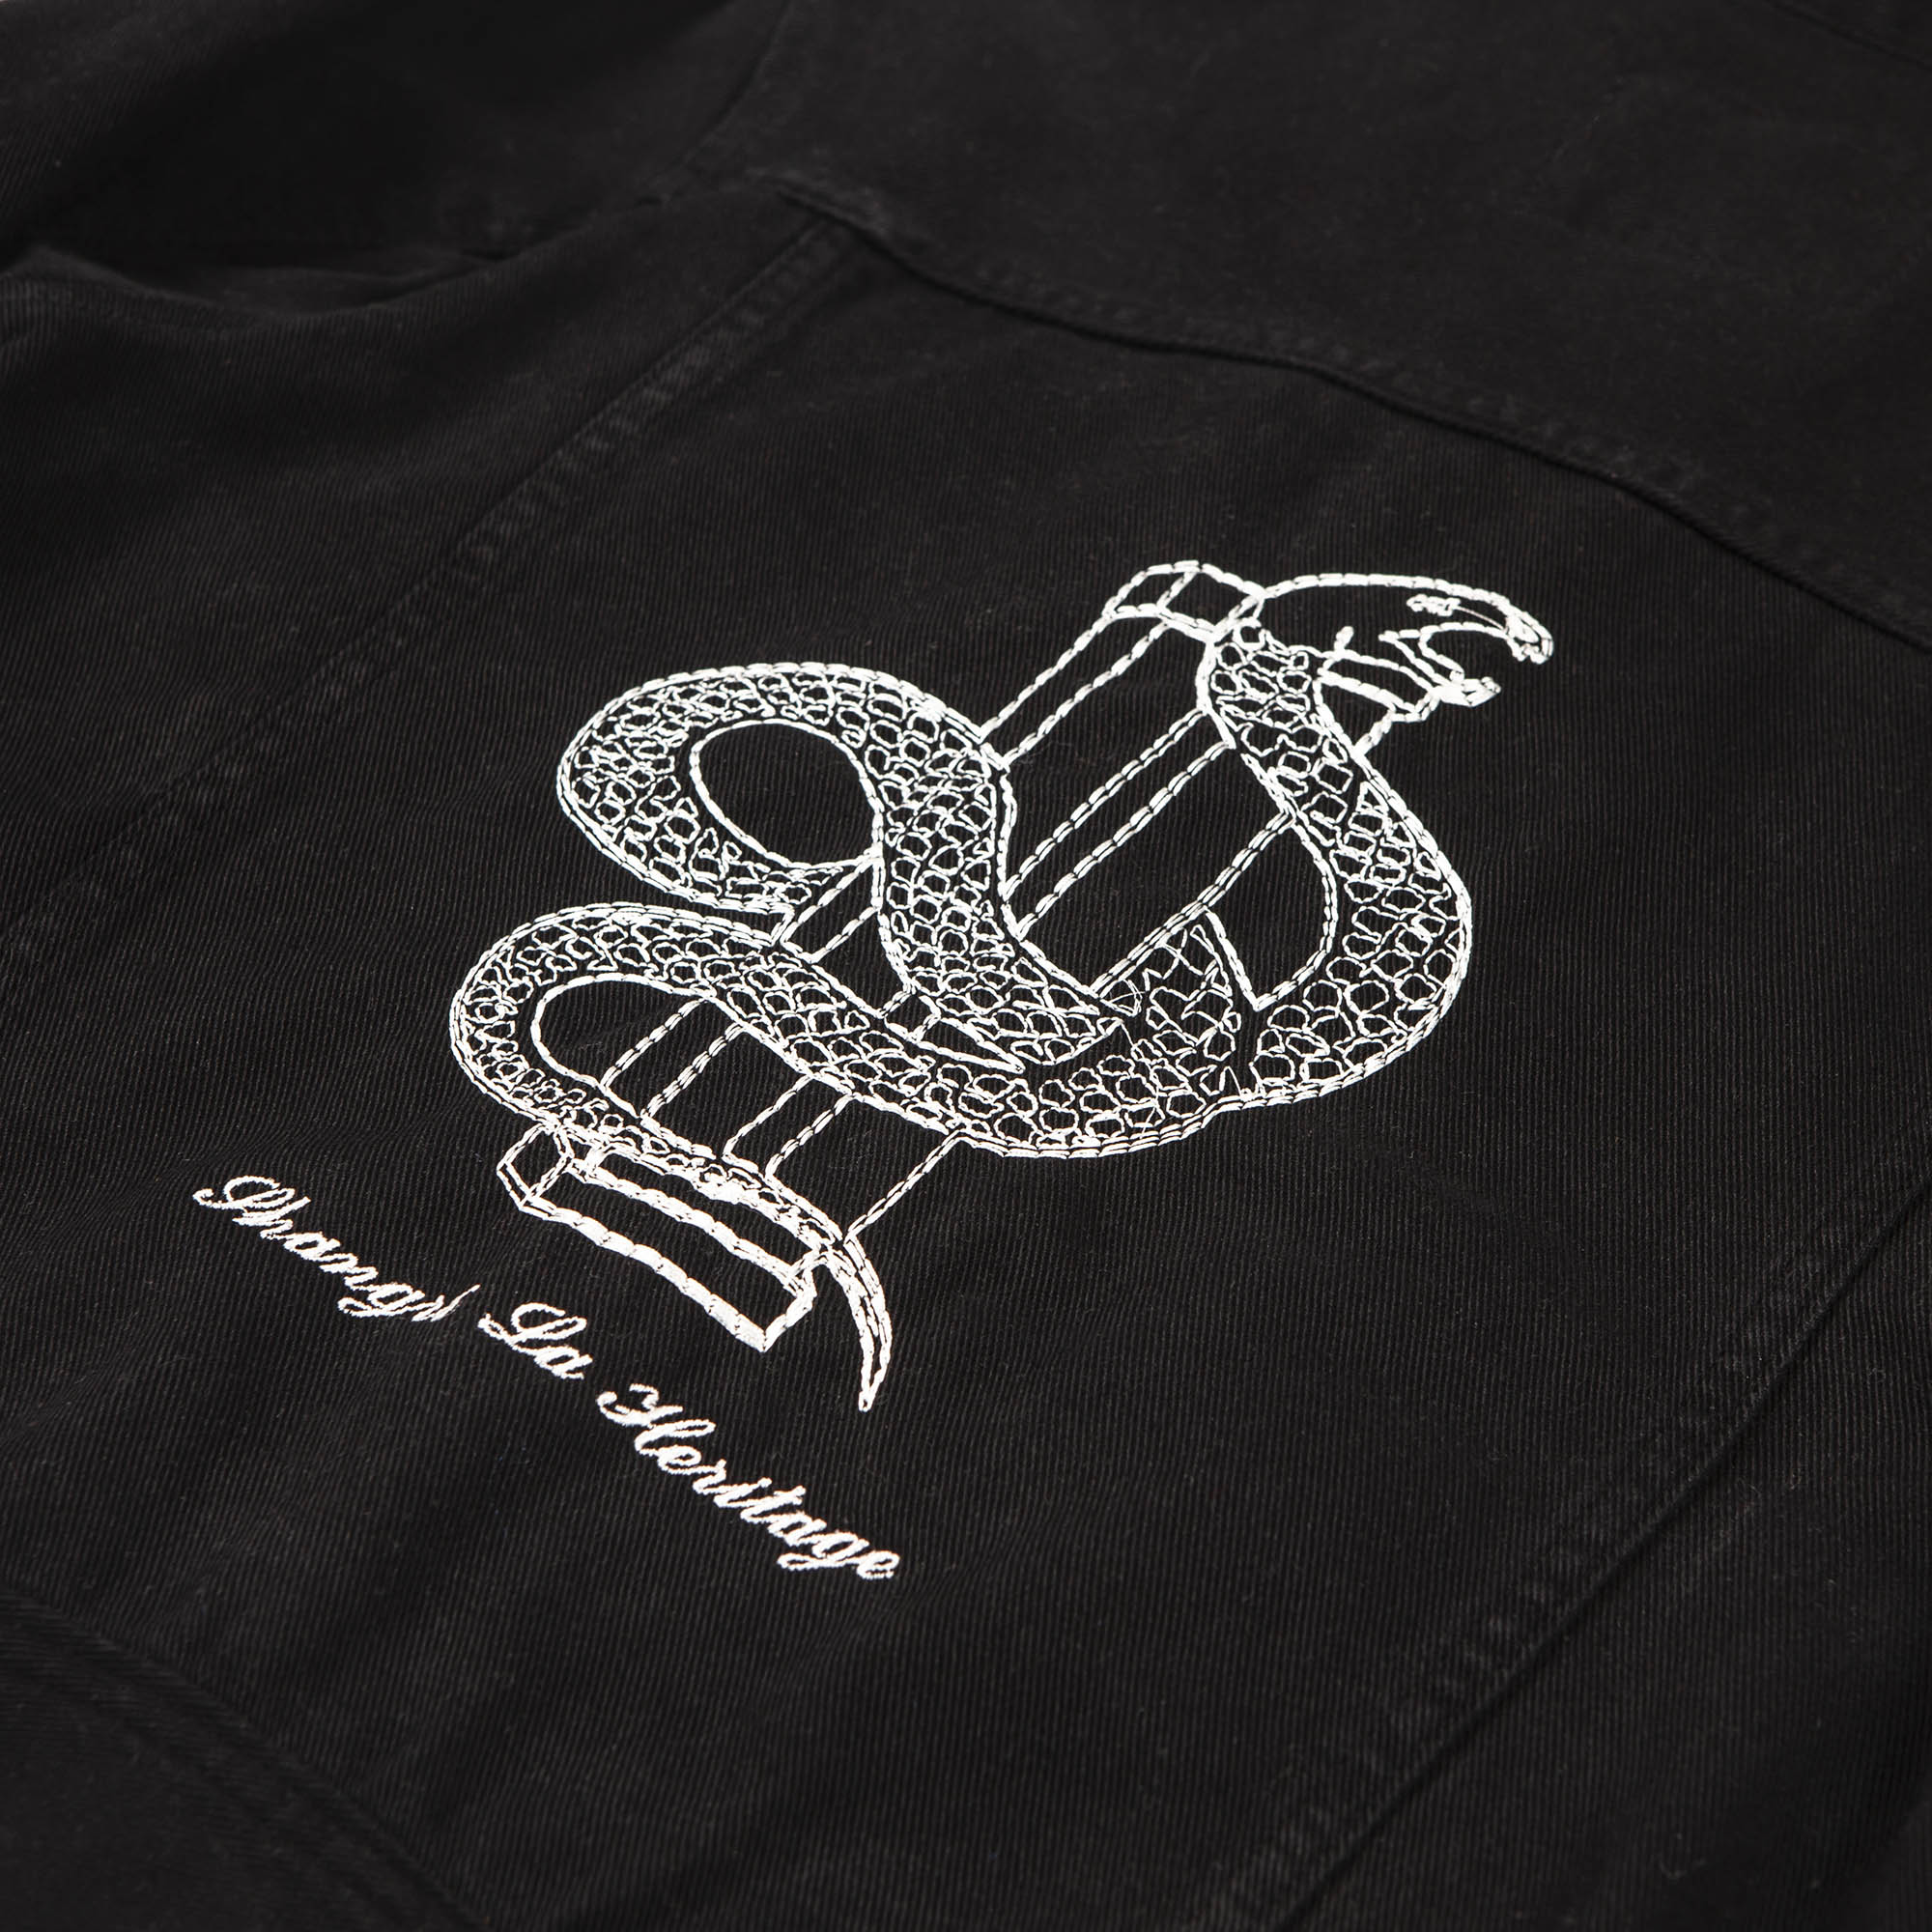 shangri-la-heritage-new-single-rider-sapientia-black-canvas-jacket-still-life-embroidery-detail